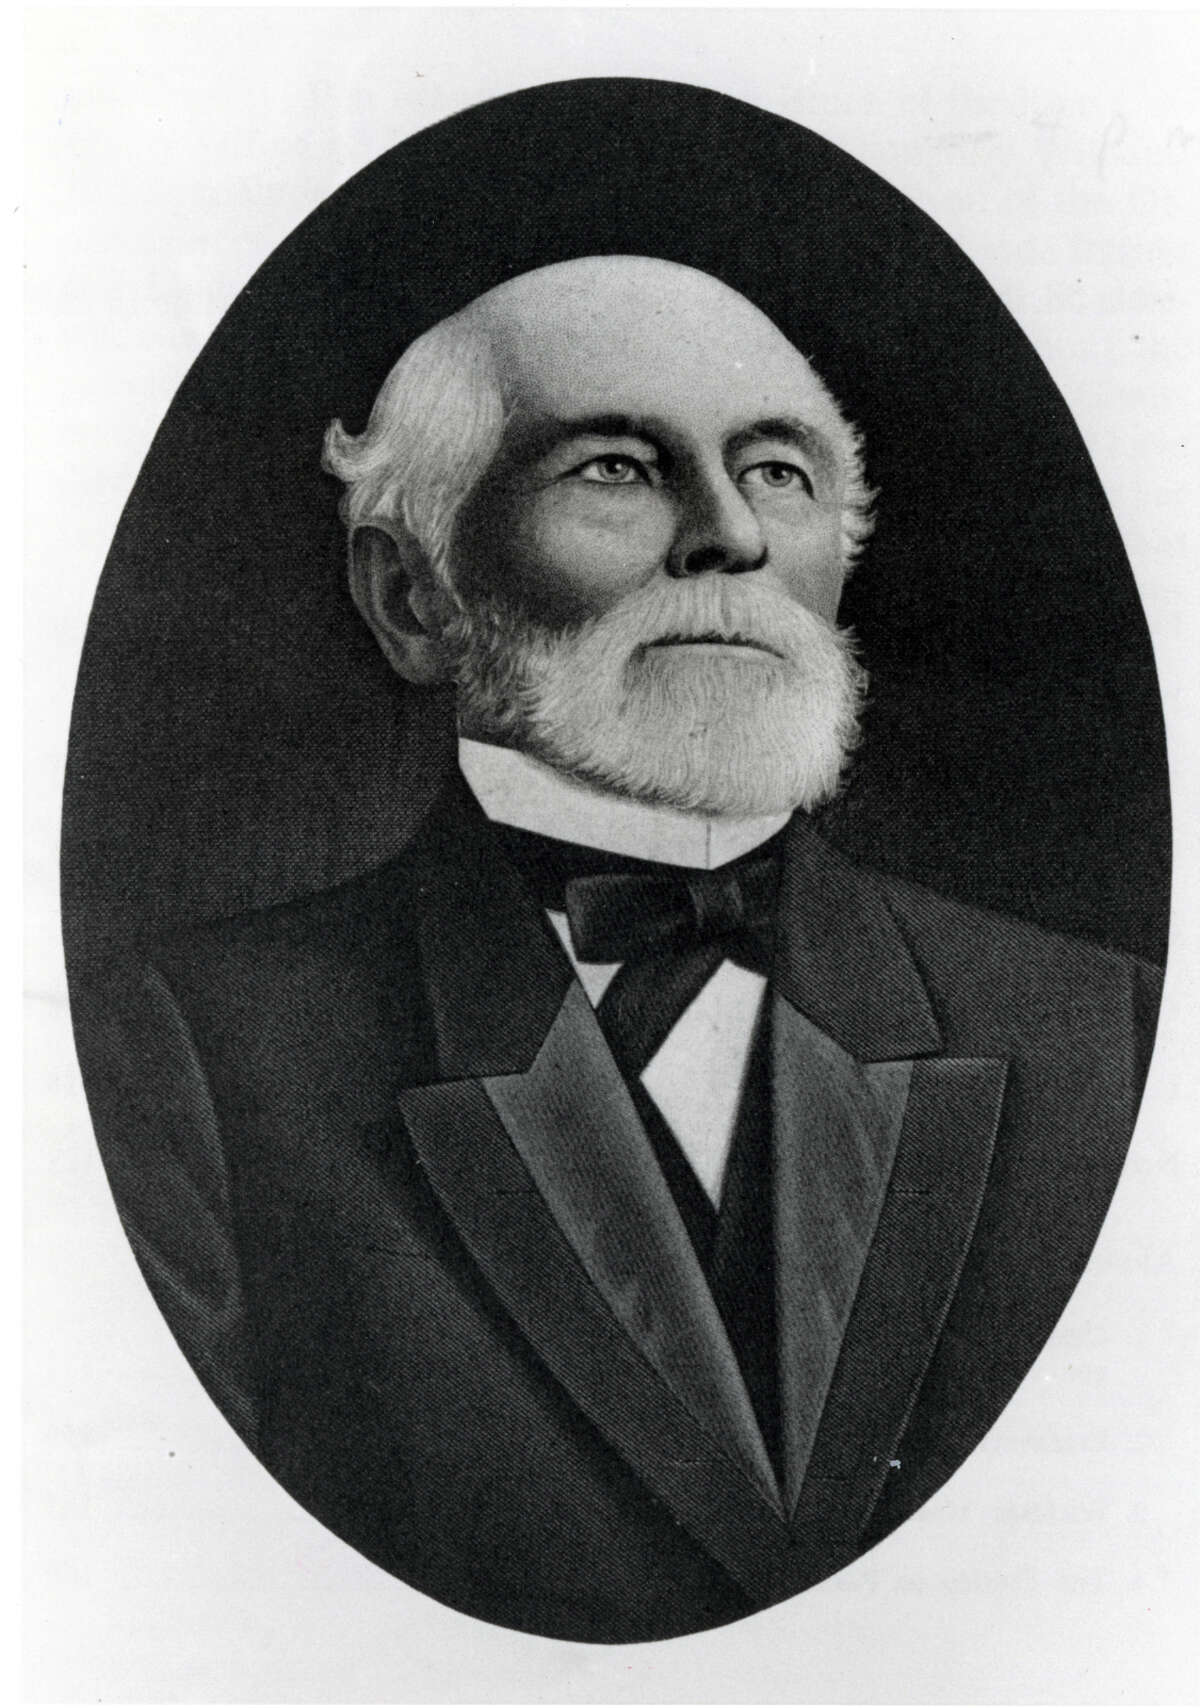 Copy portrait of William March Rice from book